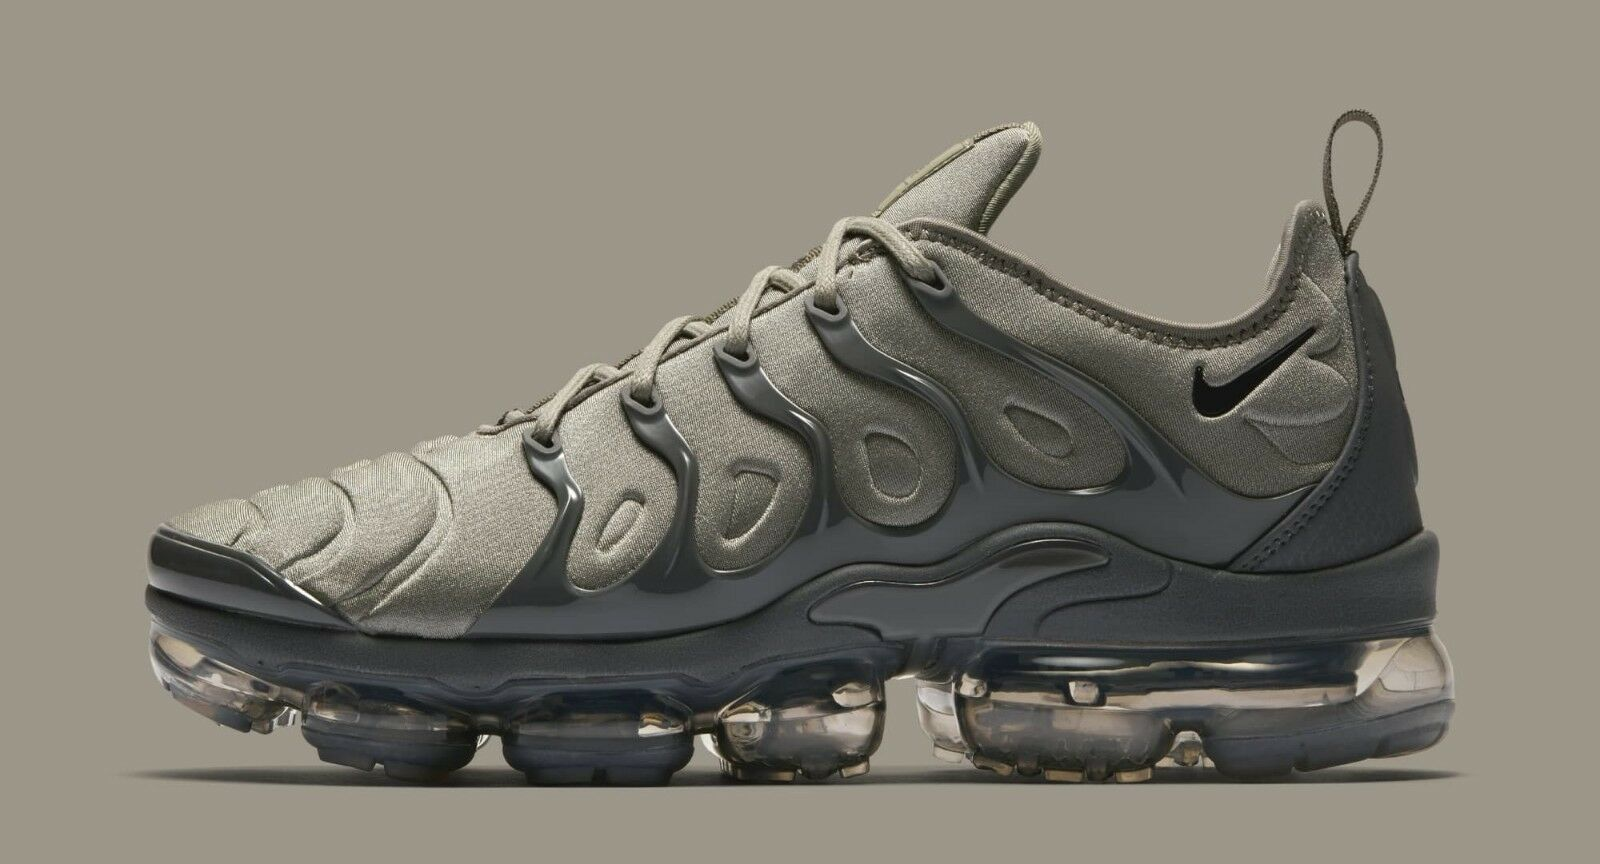 Nike Air Vapormax Plus size 12.5. Dark Stucco Dark Grey.  AT5681-001. 97 95